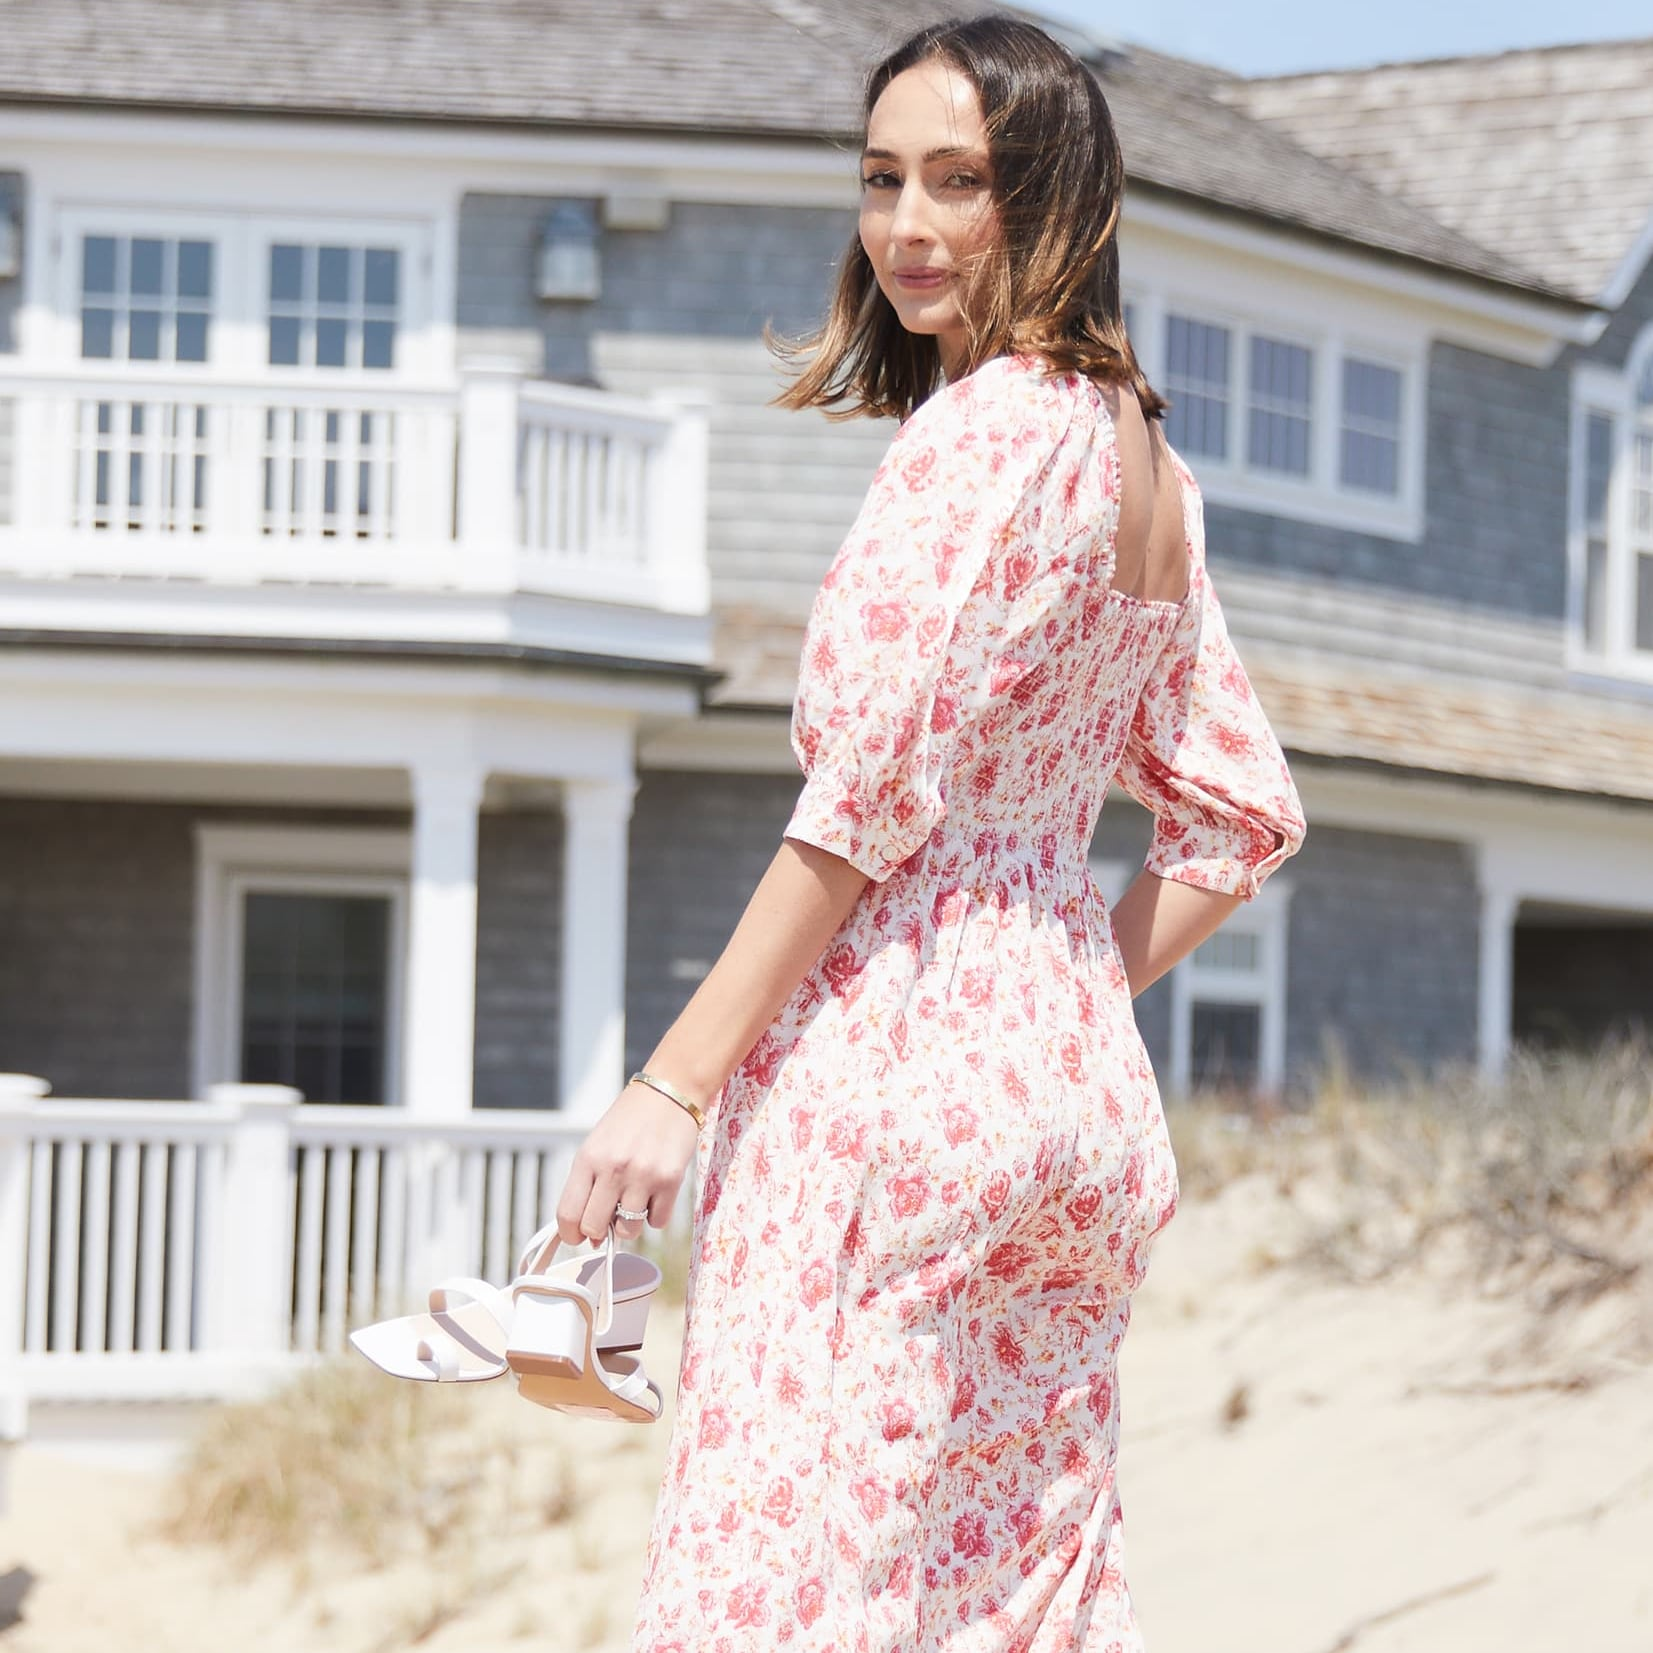 df2d4df086bc Gal Meets Glam Collection Phoebe Floral Puff-Sleeve Chiffon Maxi Dress |  Best Maxi Dresses From Nordstrom 2019 | POPSUGAR Fashion Photo 6